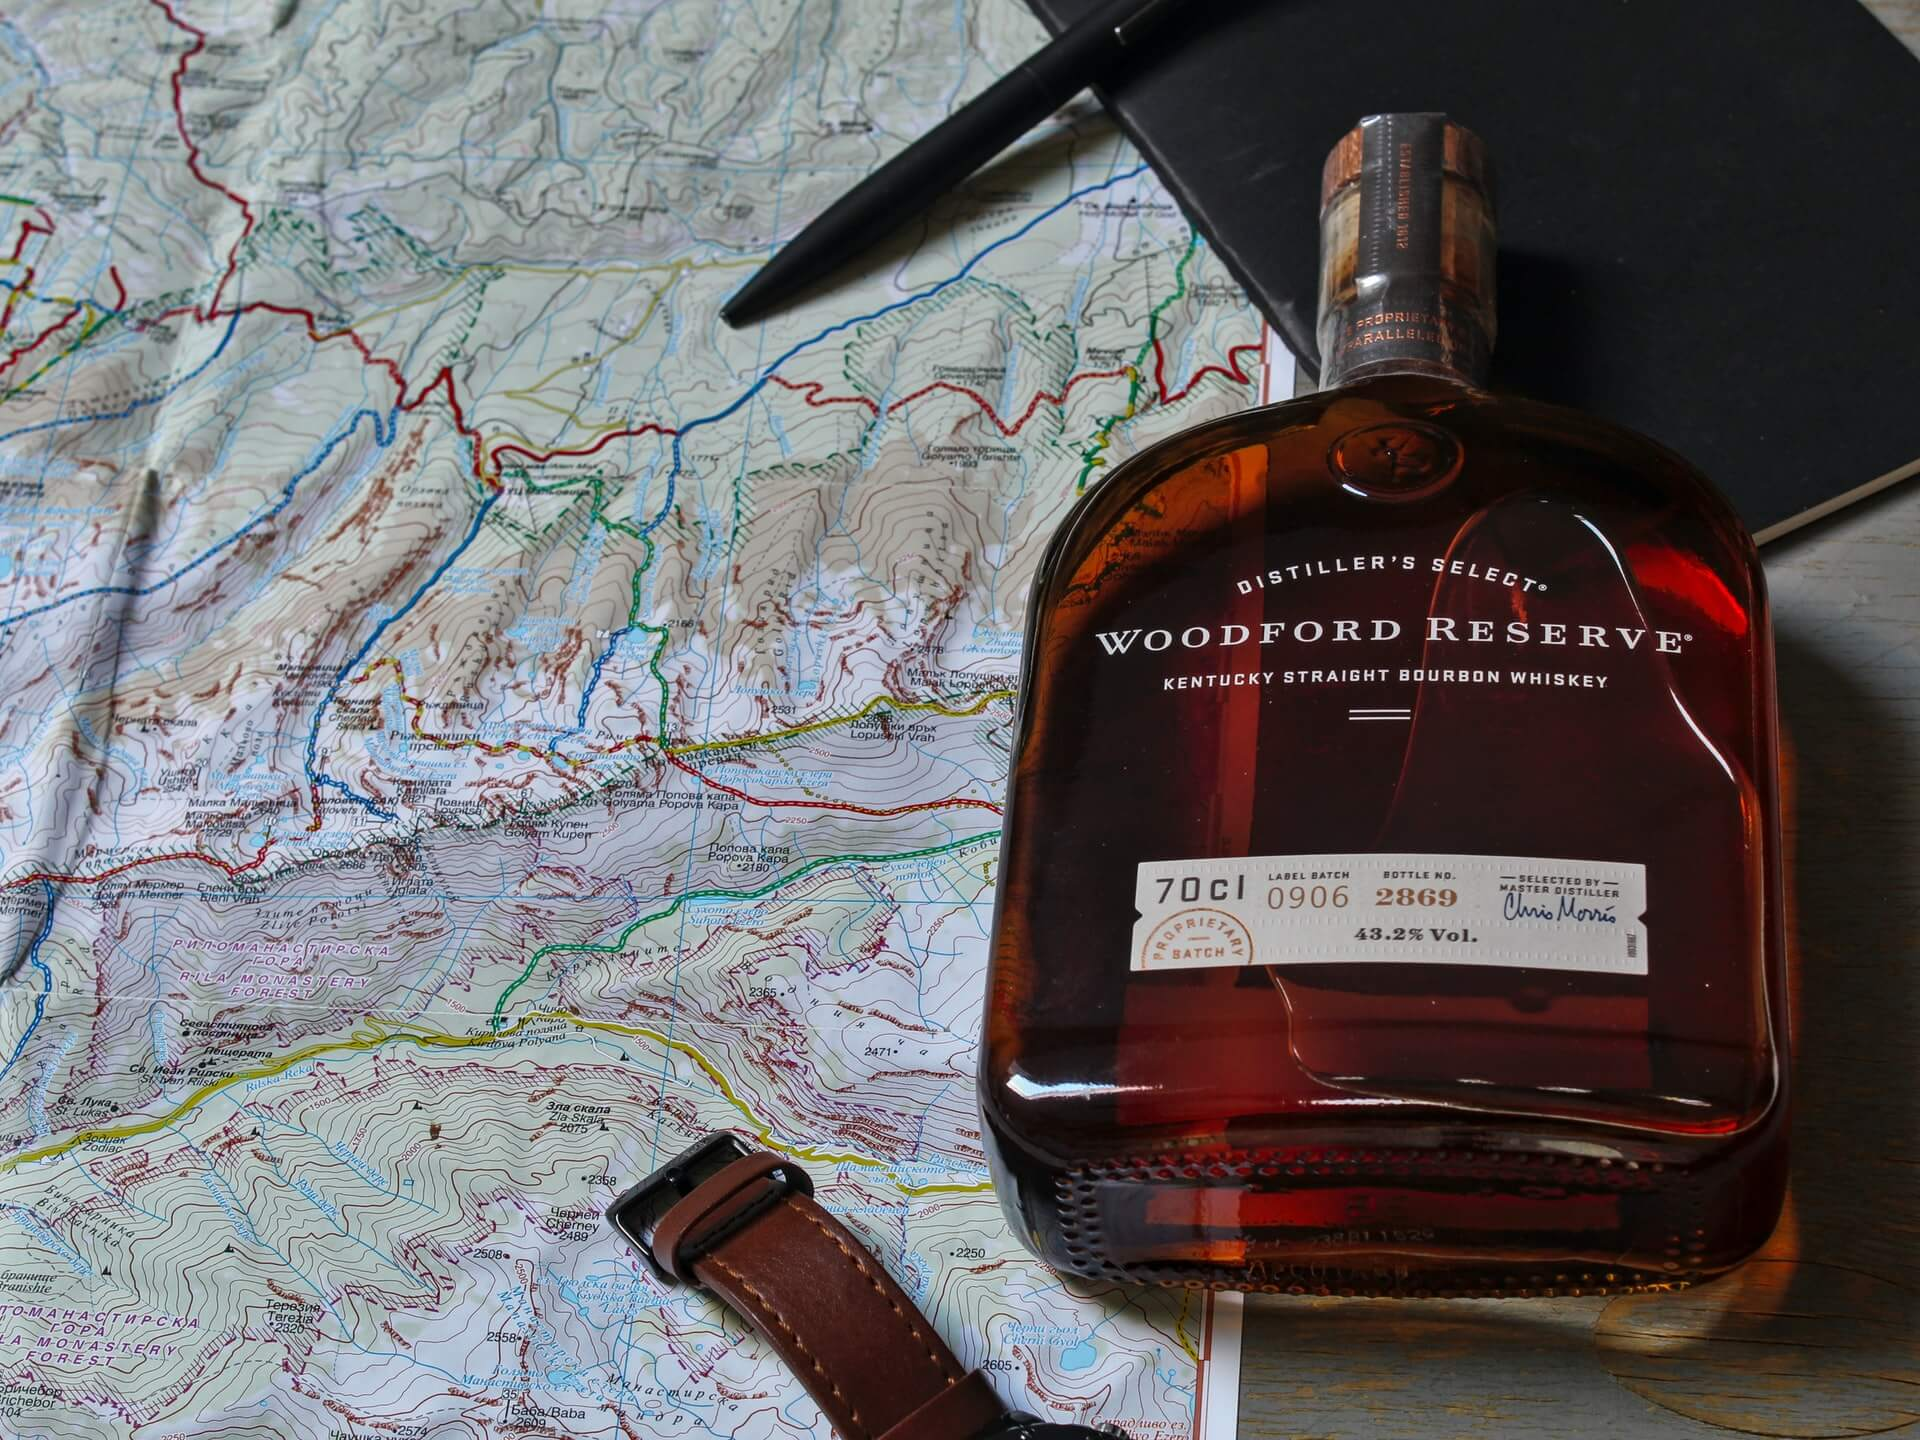 Bottle of Woodford Reserve Distiller's Select Kentucky Straight Bourbon on top of a map